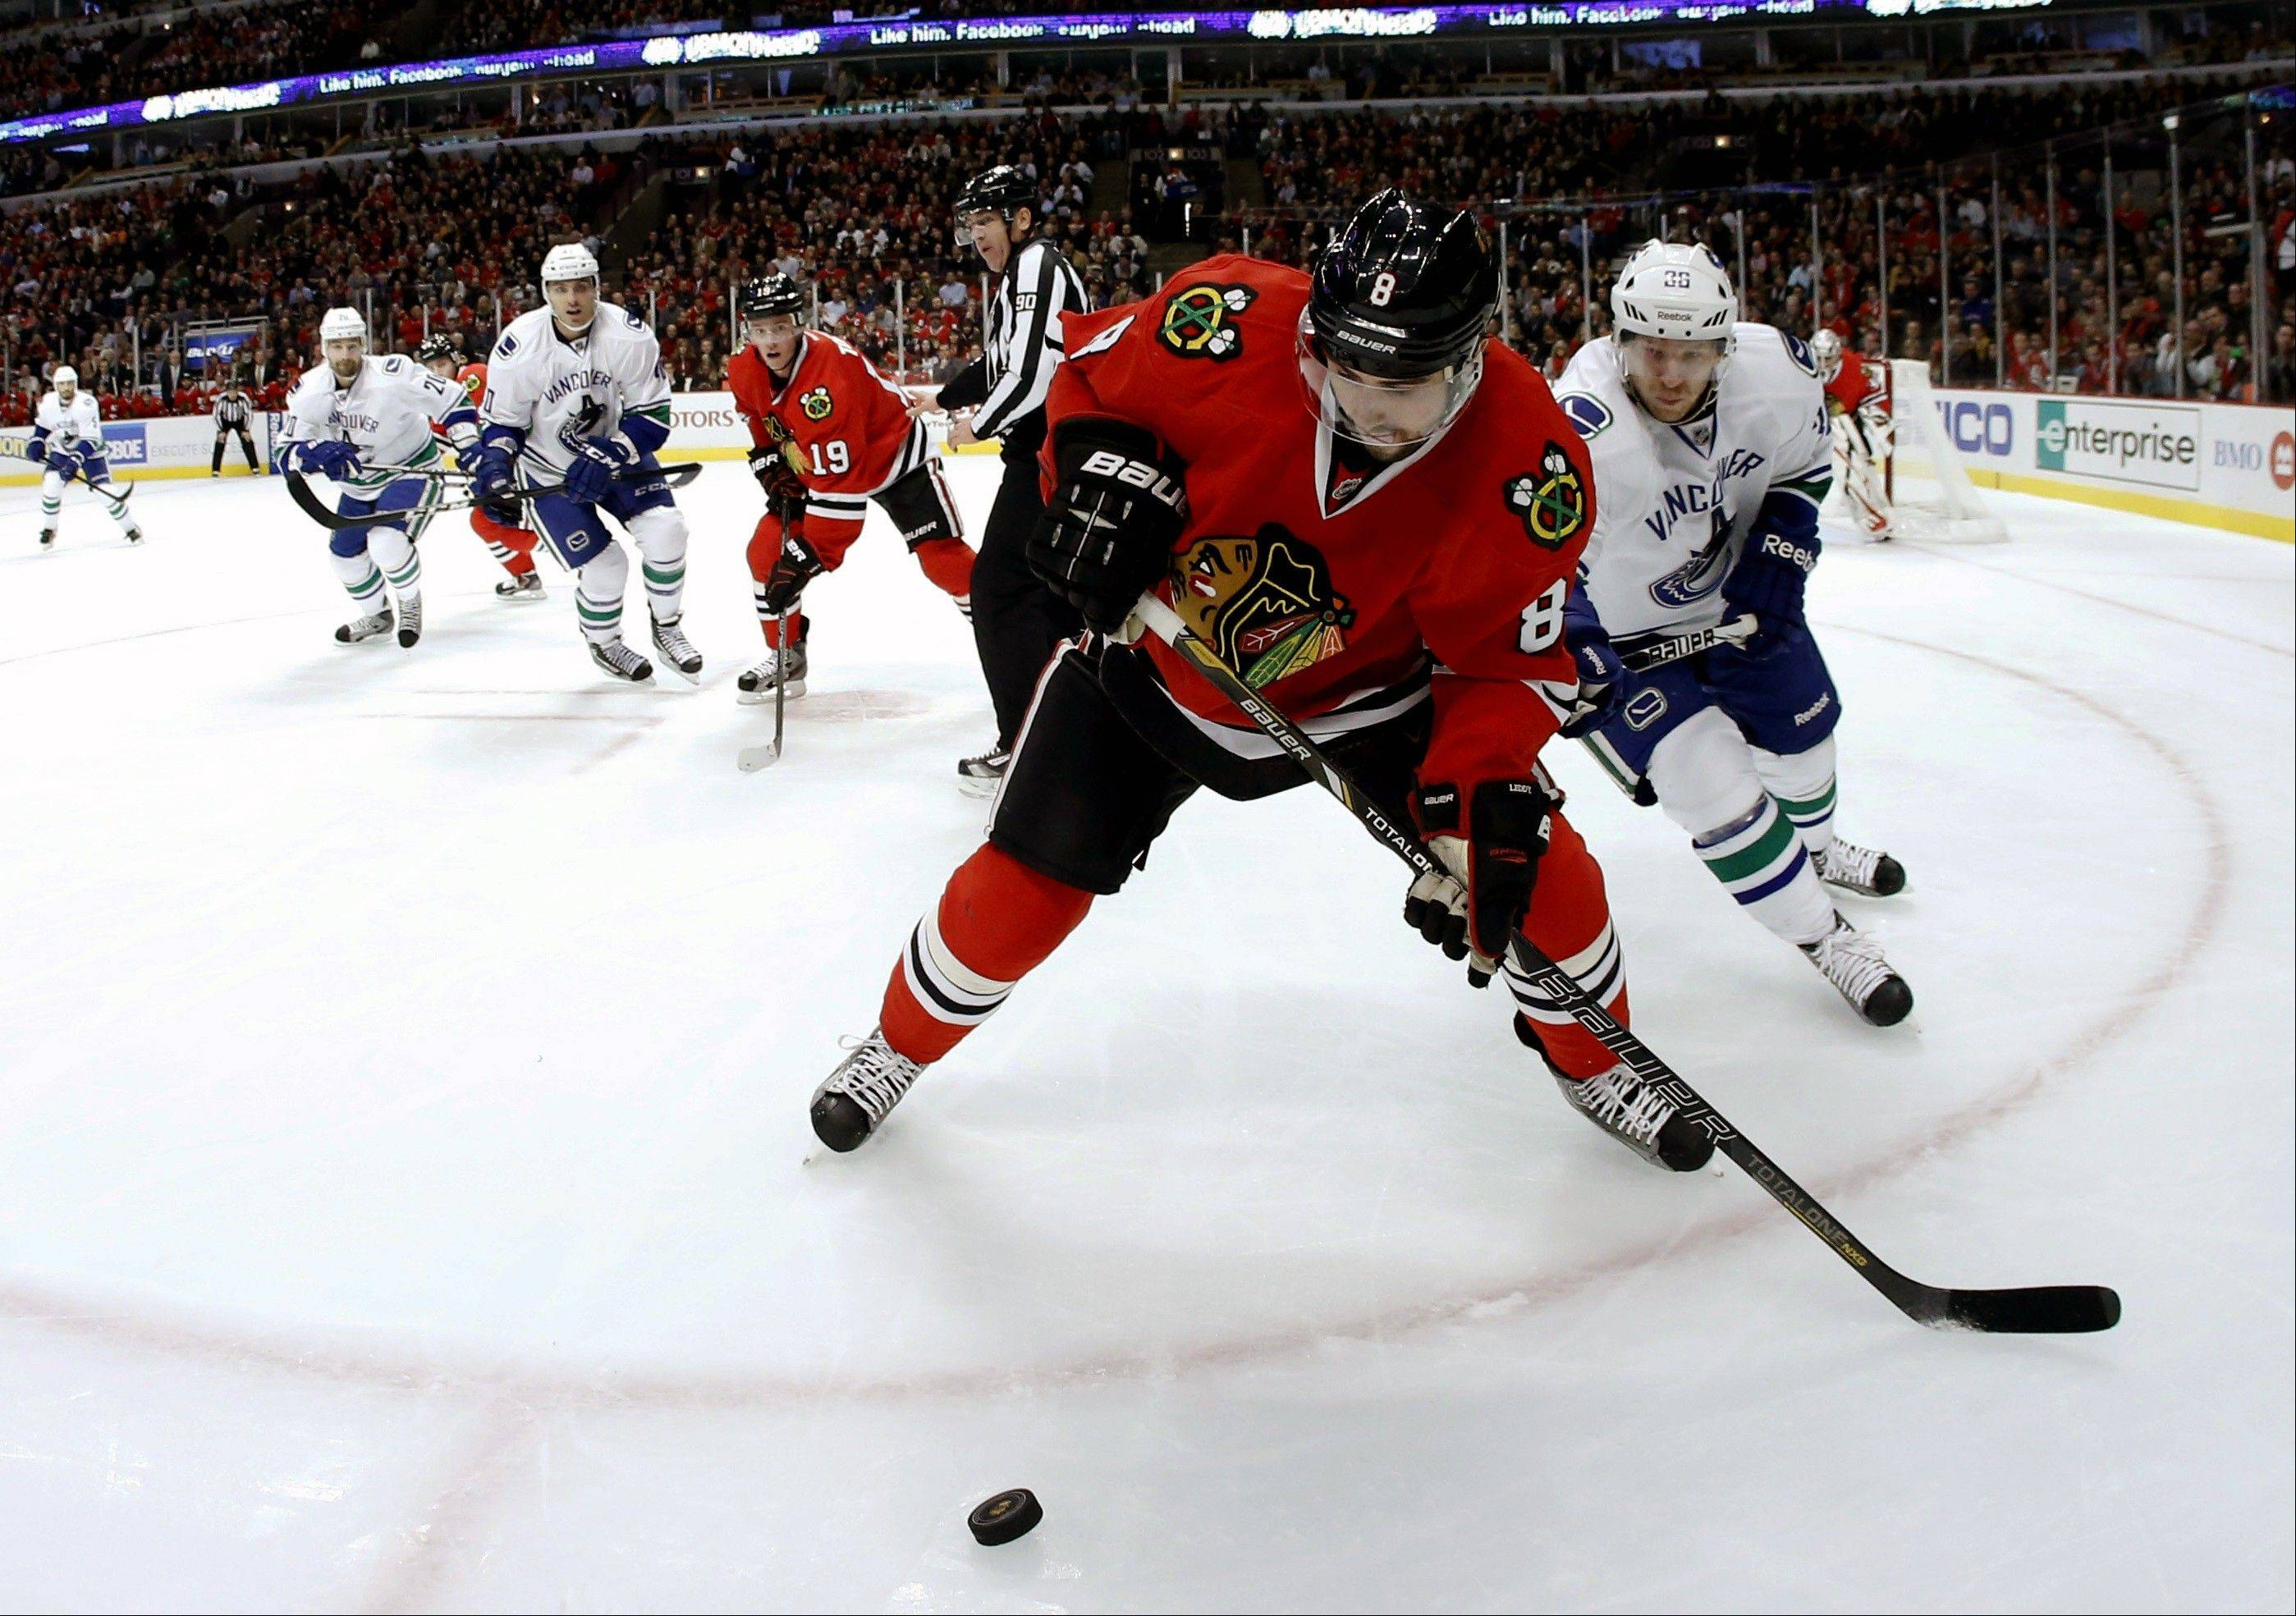 Chicago Blackhawks defenseman Nick Leddy tries to clear the puck under pressure from Vancouver Canucks right wing Jannik Hansen in the first period.